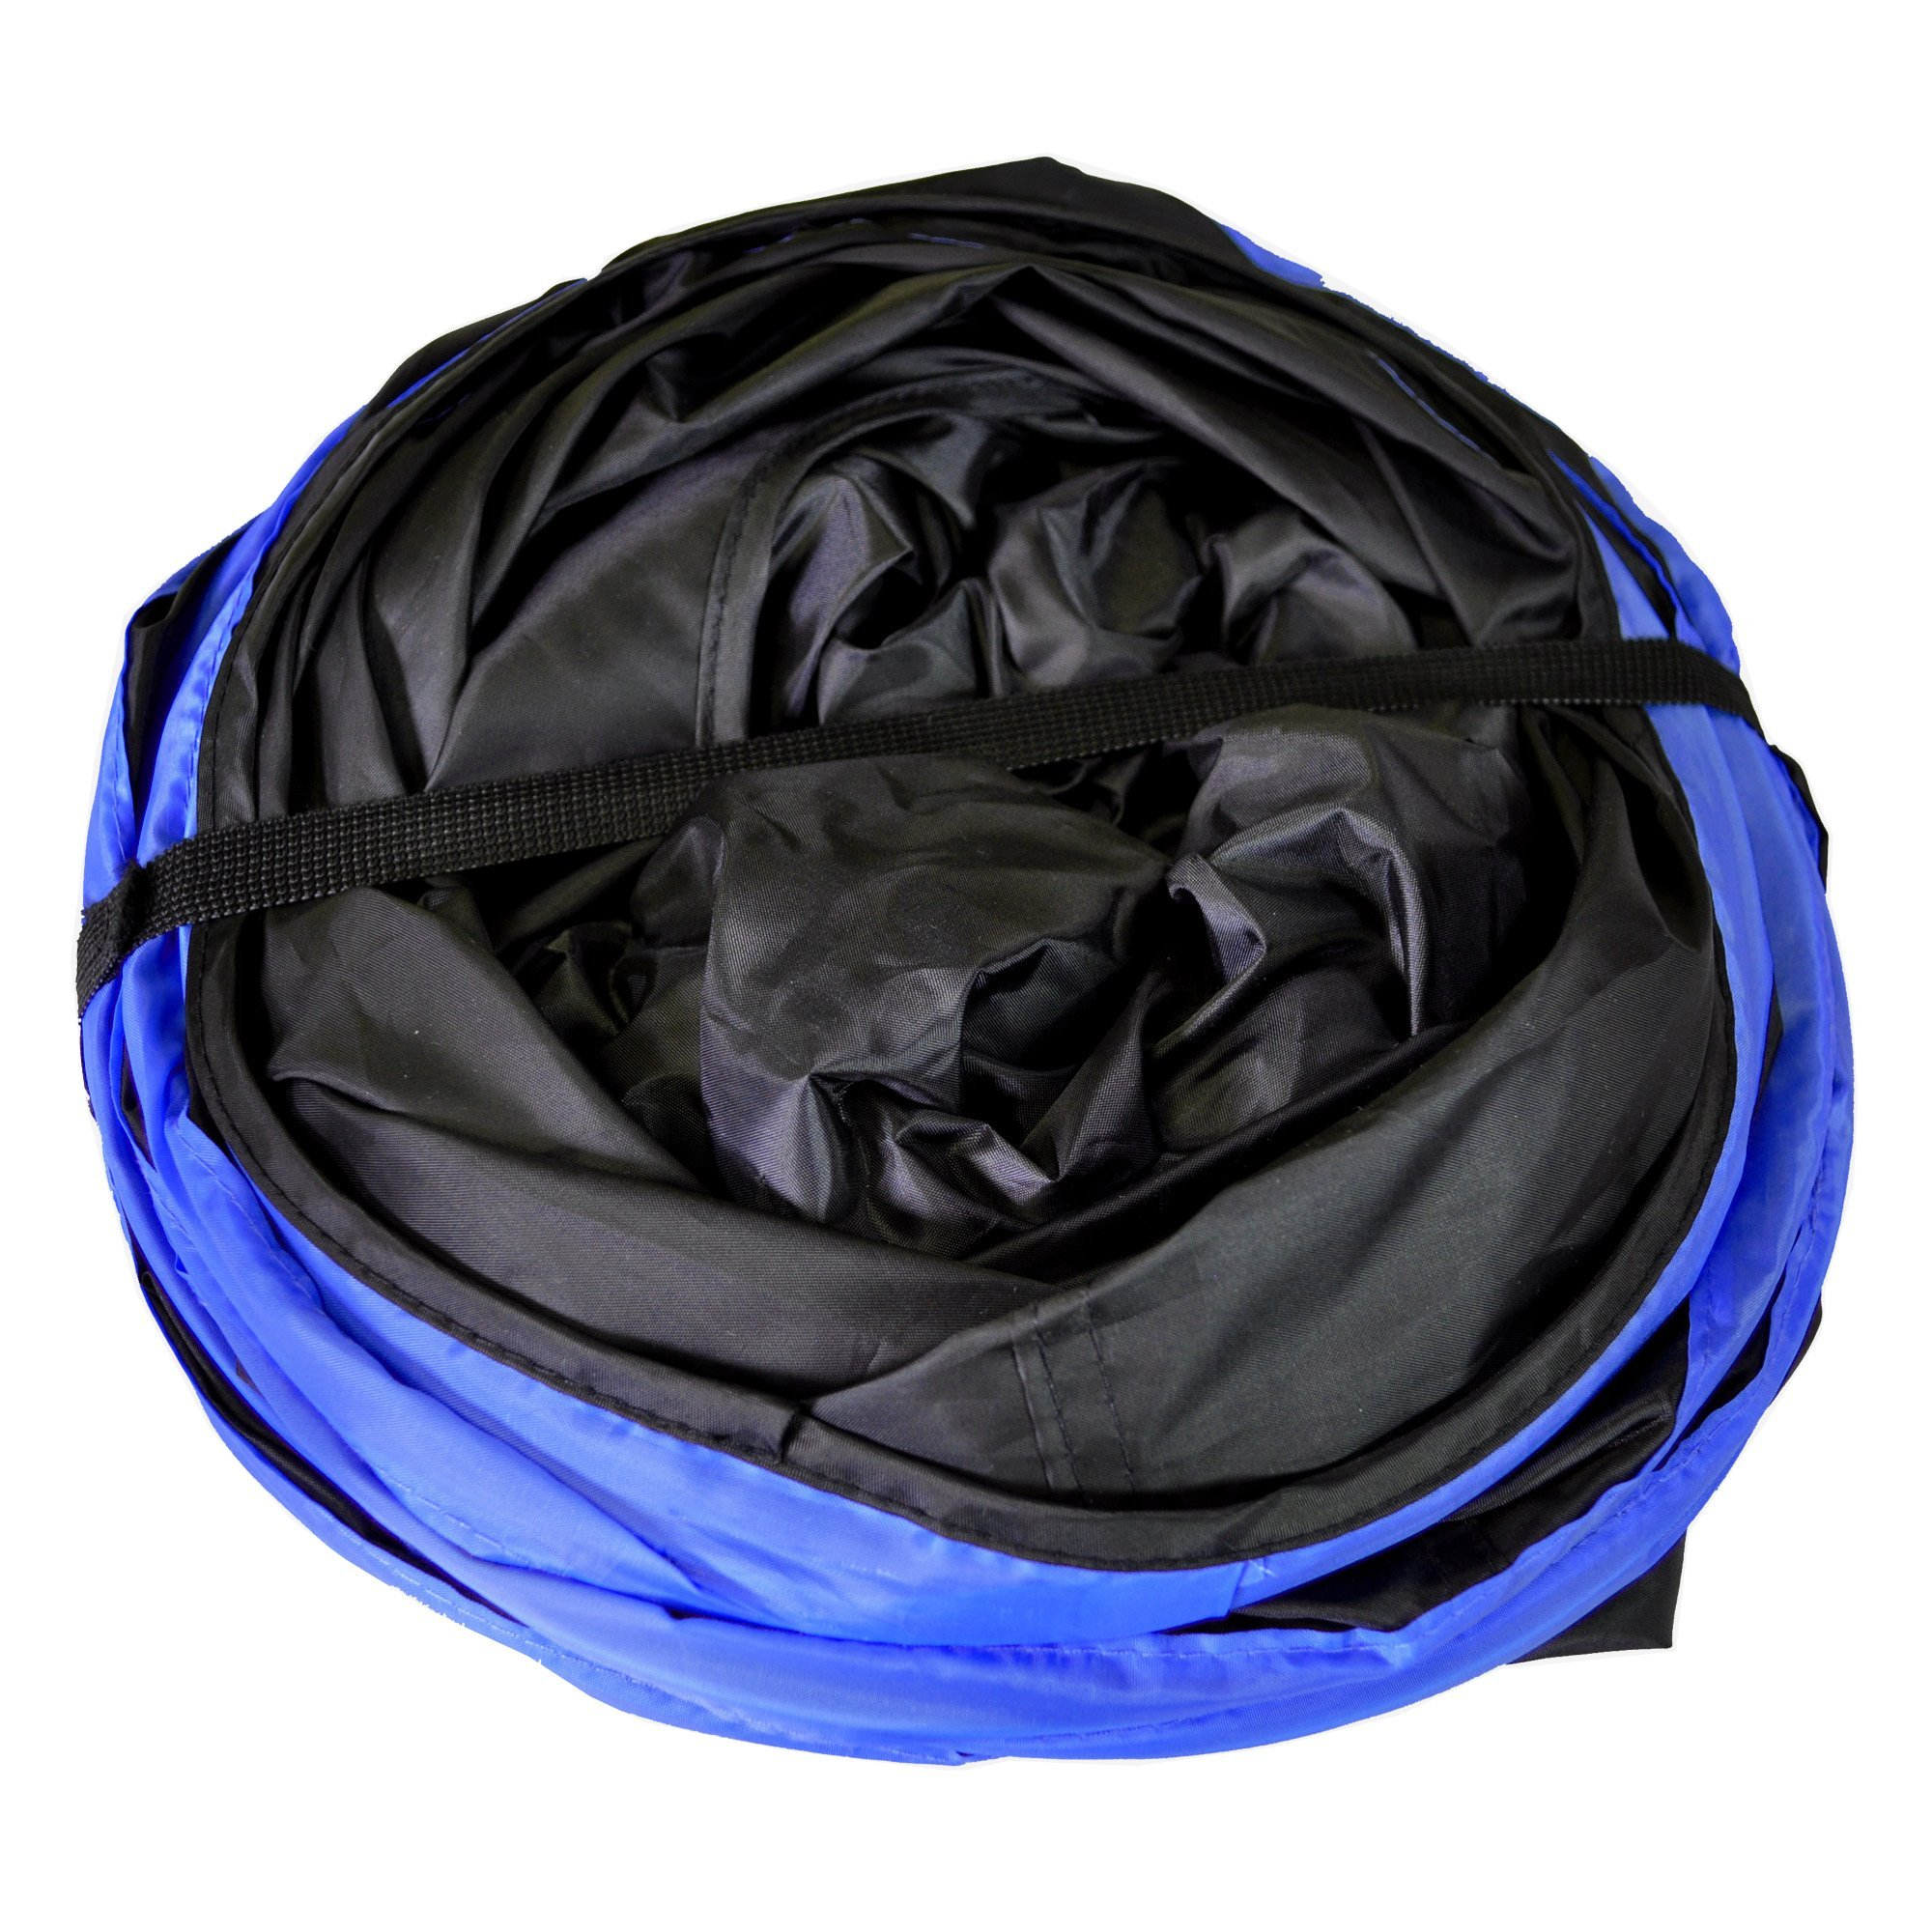 Purrfect Feline New Cat tunnel Design, Collapsible 4-way Cat Tunnel Toy with Crinkle (Medium, Dark Blue) by Purrfect Feline (Image #3)